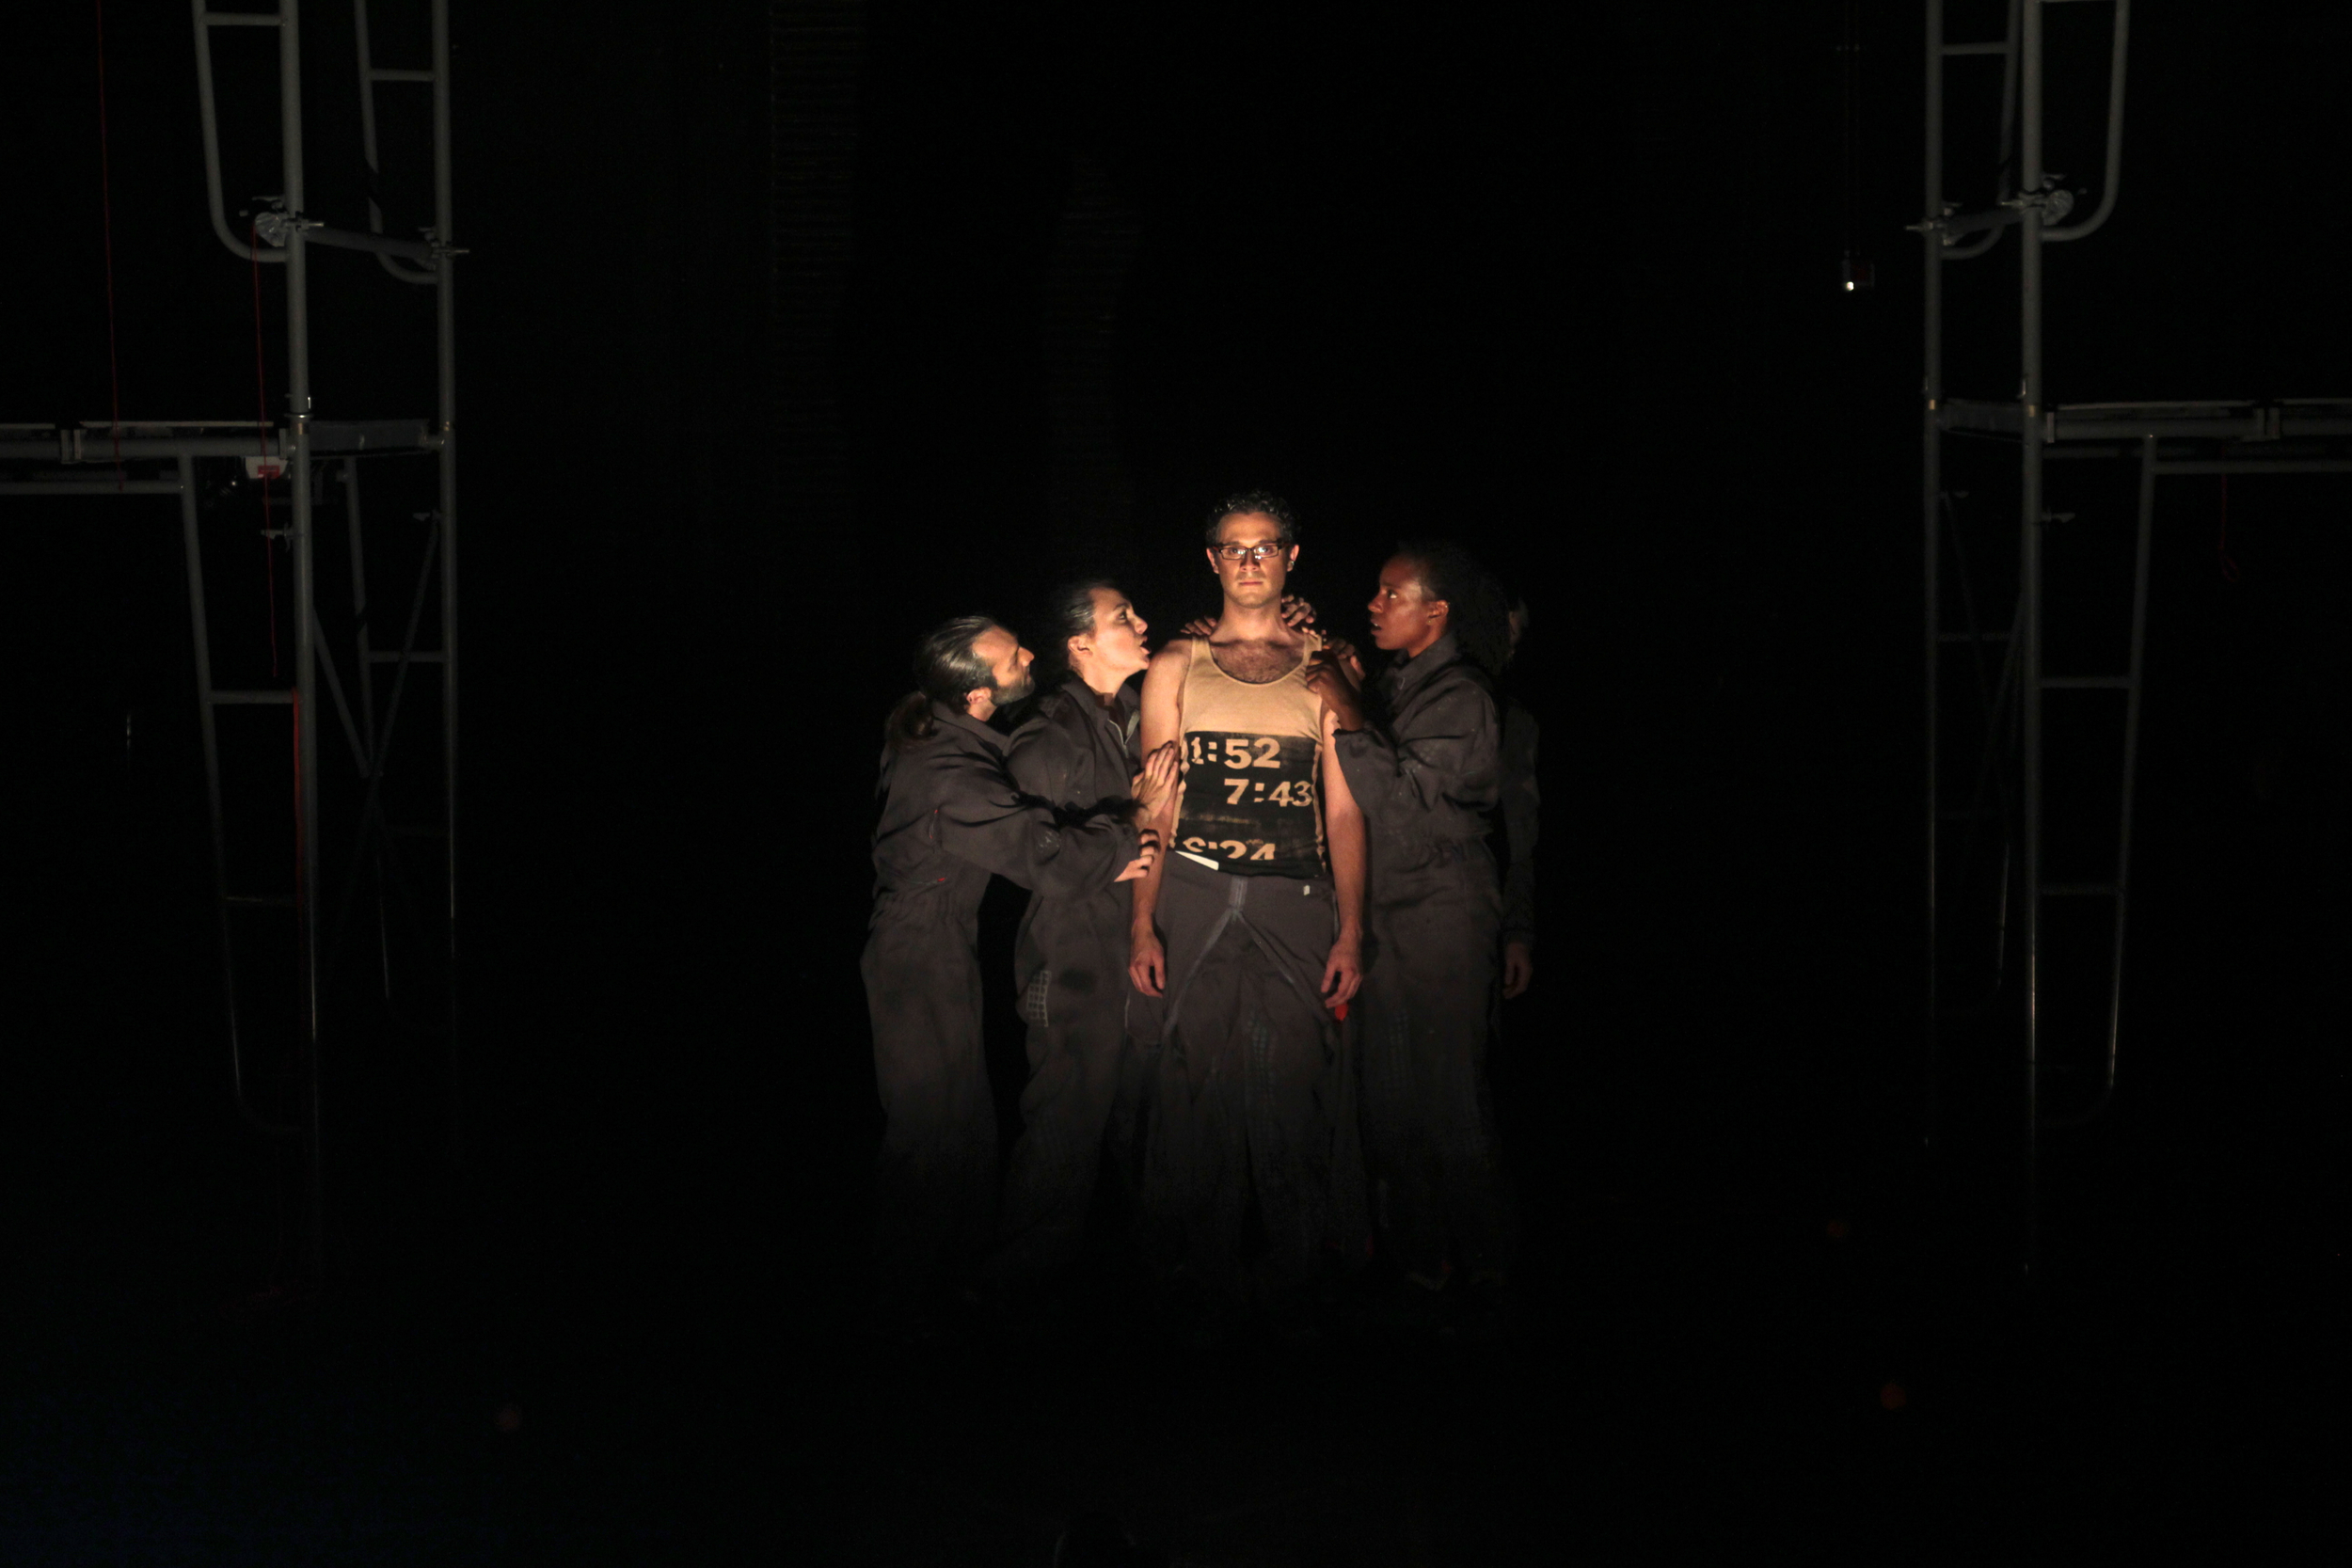 Scenic and Costume designs by Brunella Provvidente and Anastasia Schneider; Lighting design by Adam Vachon; Media design by Jacob Pinholster. Photo credit: Tim Trumble